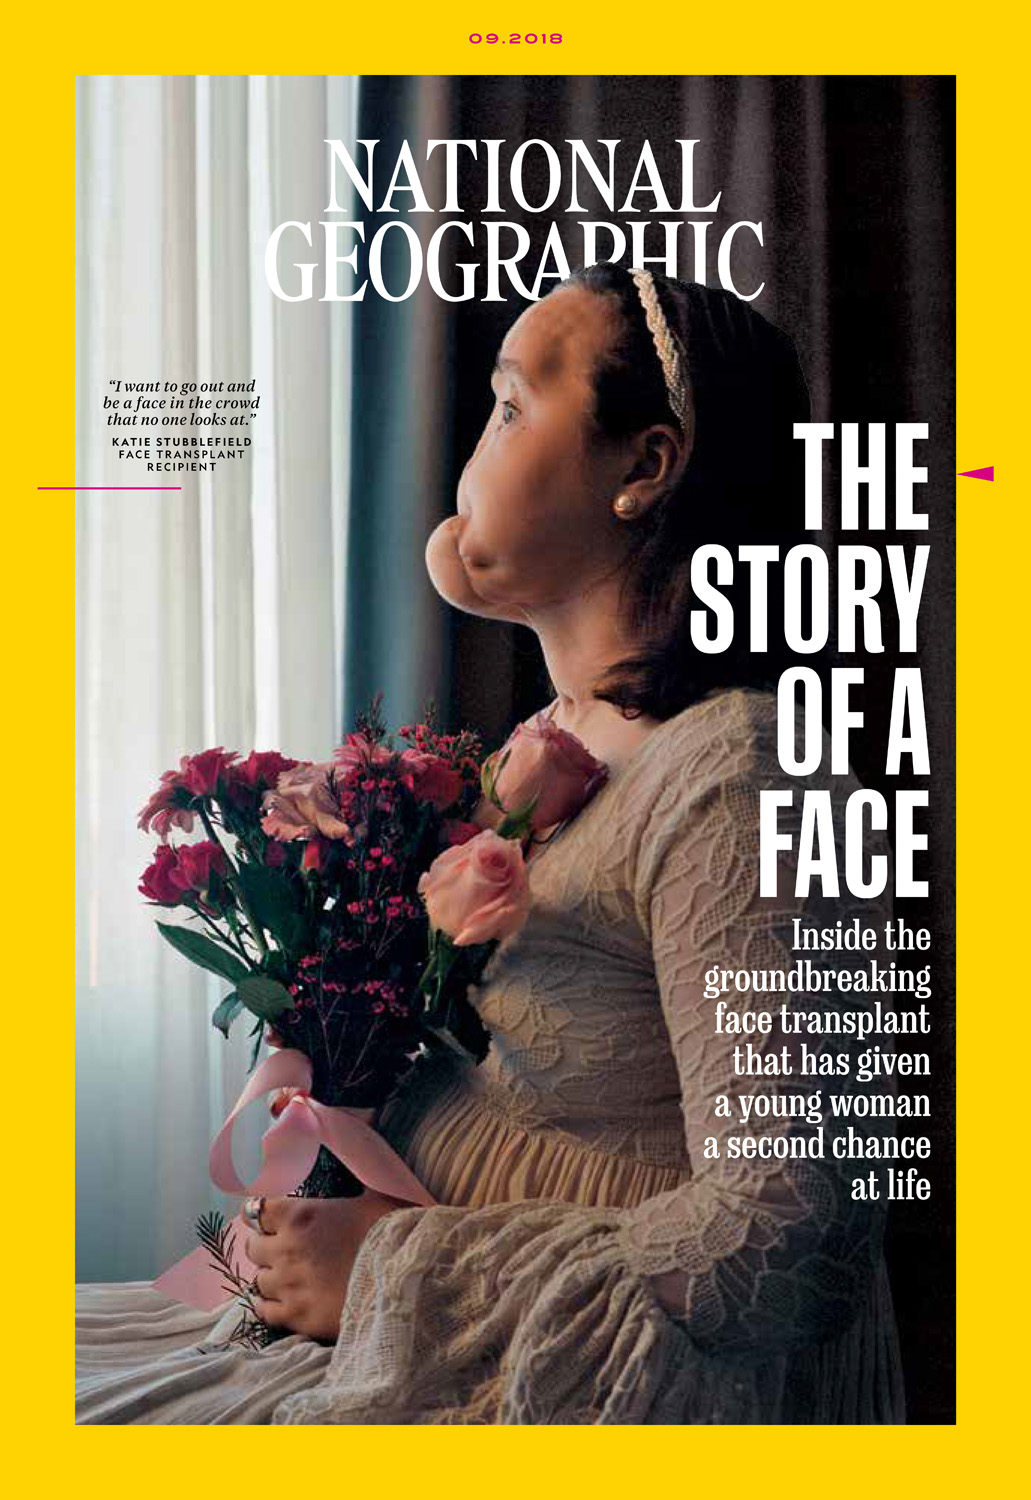 Photo of National Geographic September 2018 Cover